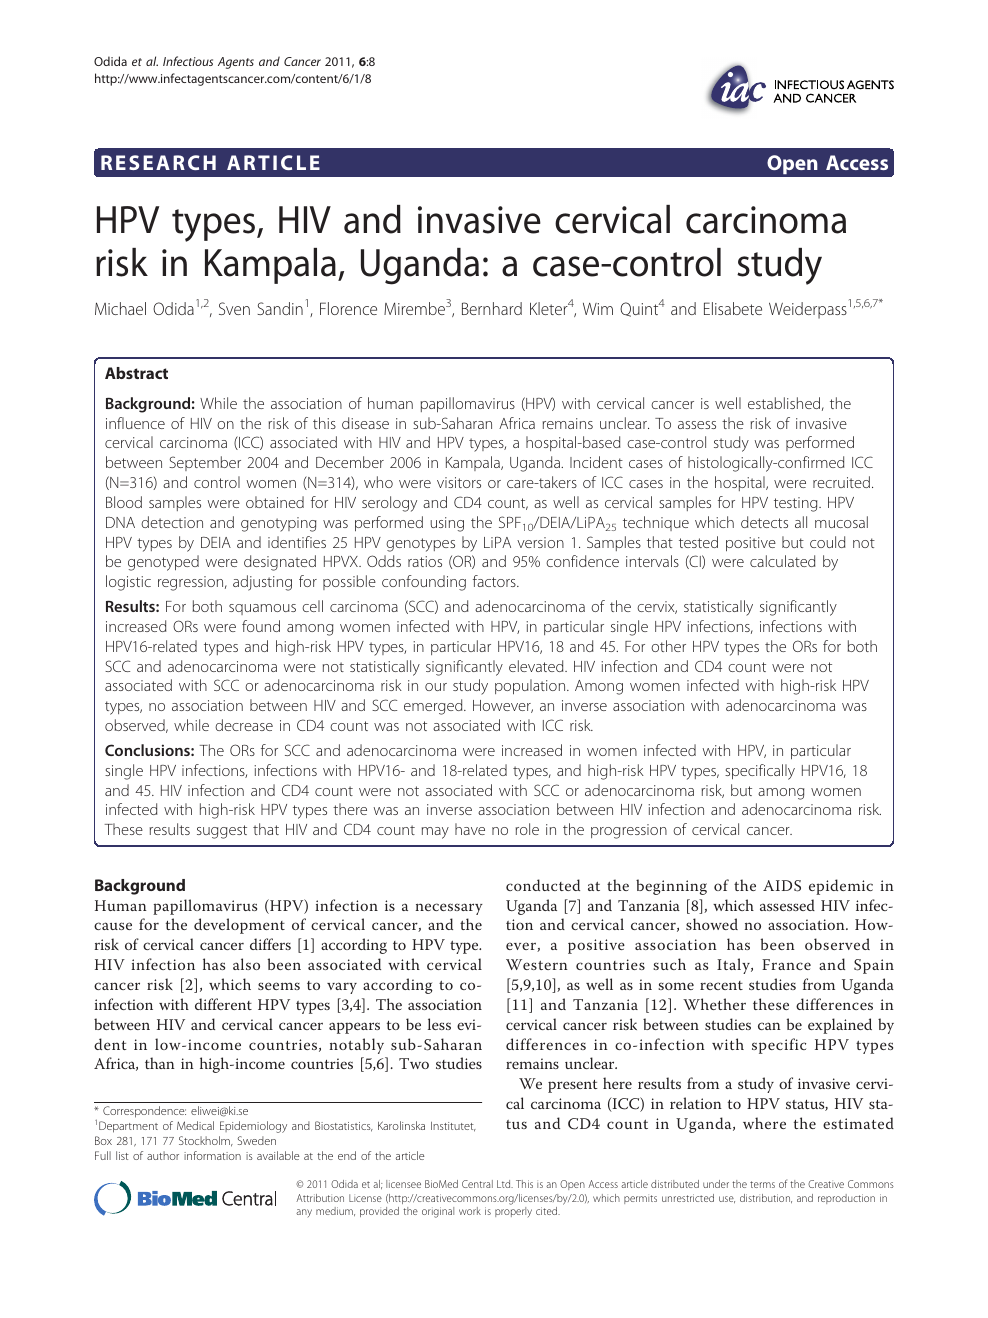 hpv and cofactors for invasive cervical cancer in morocco a multicentre case-control study do warts on tongue hurt